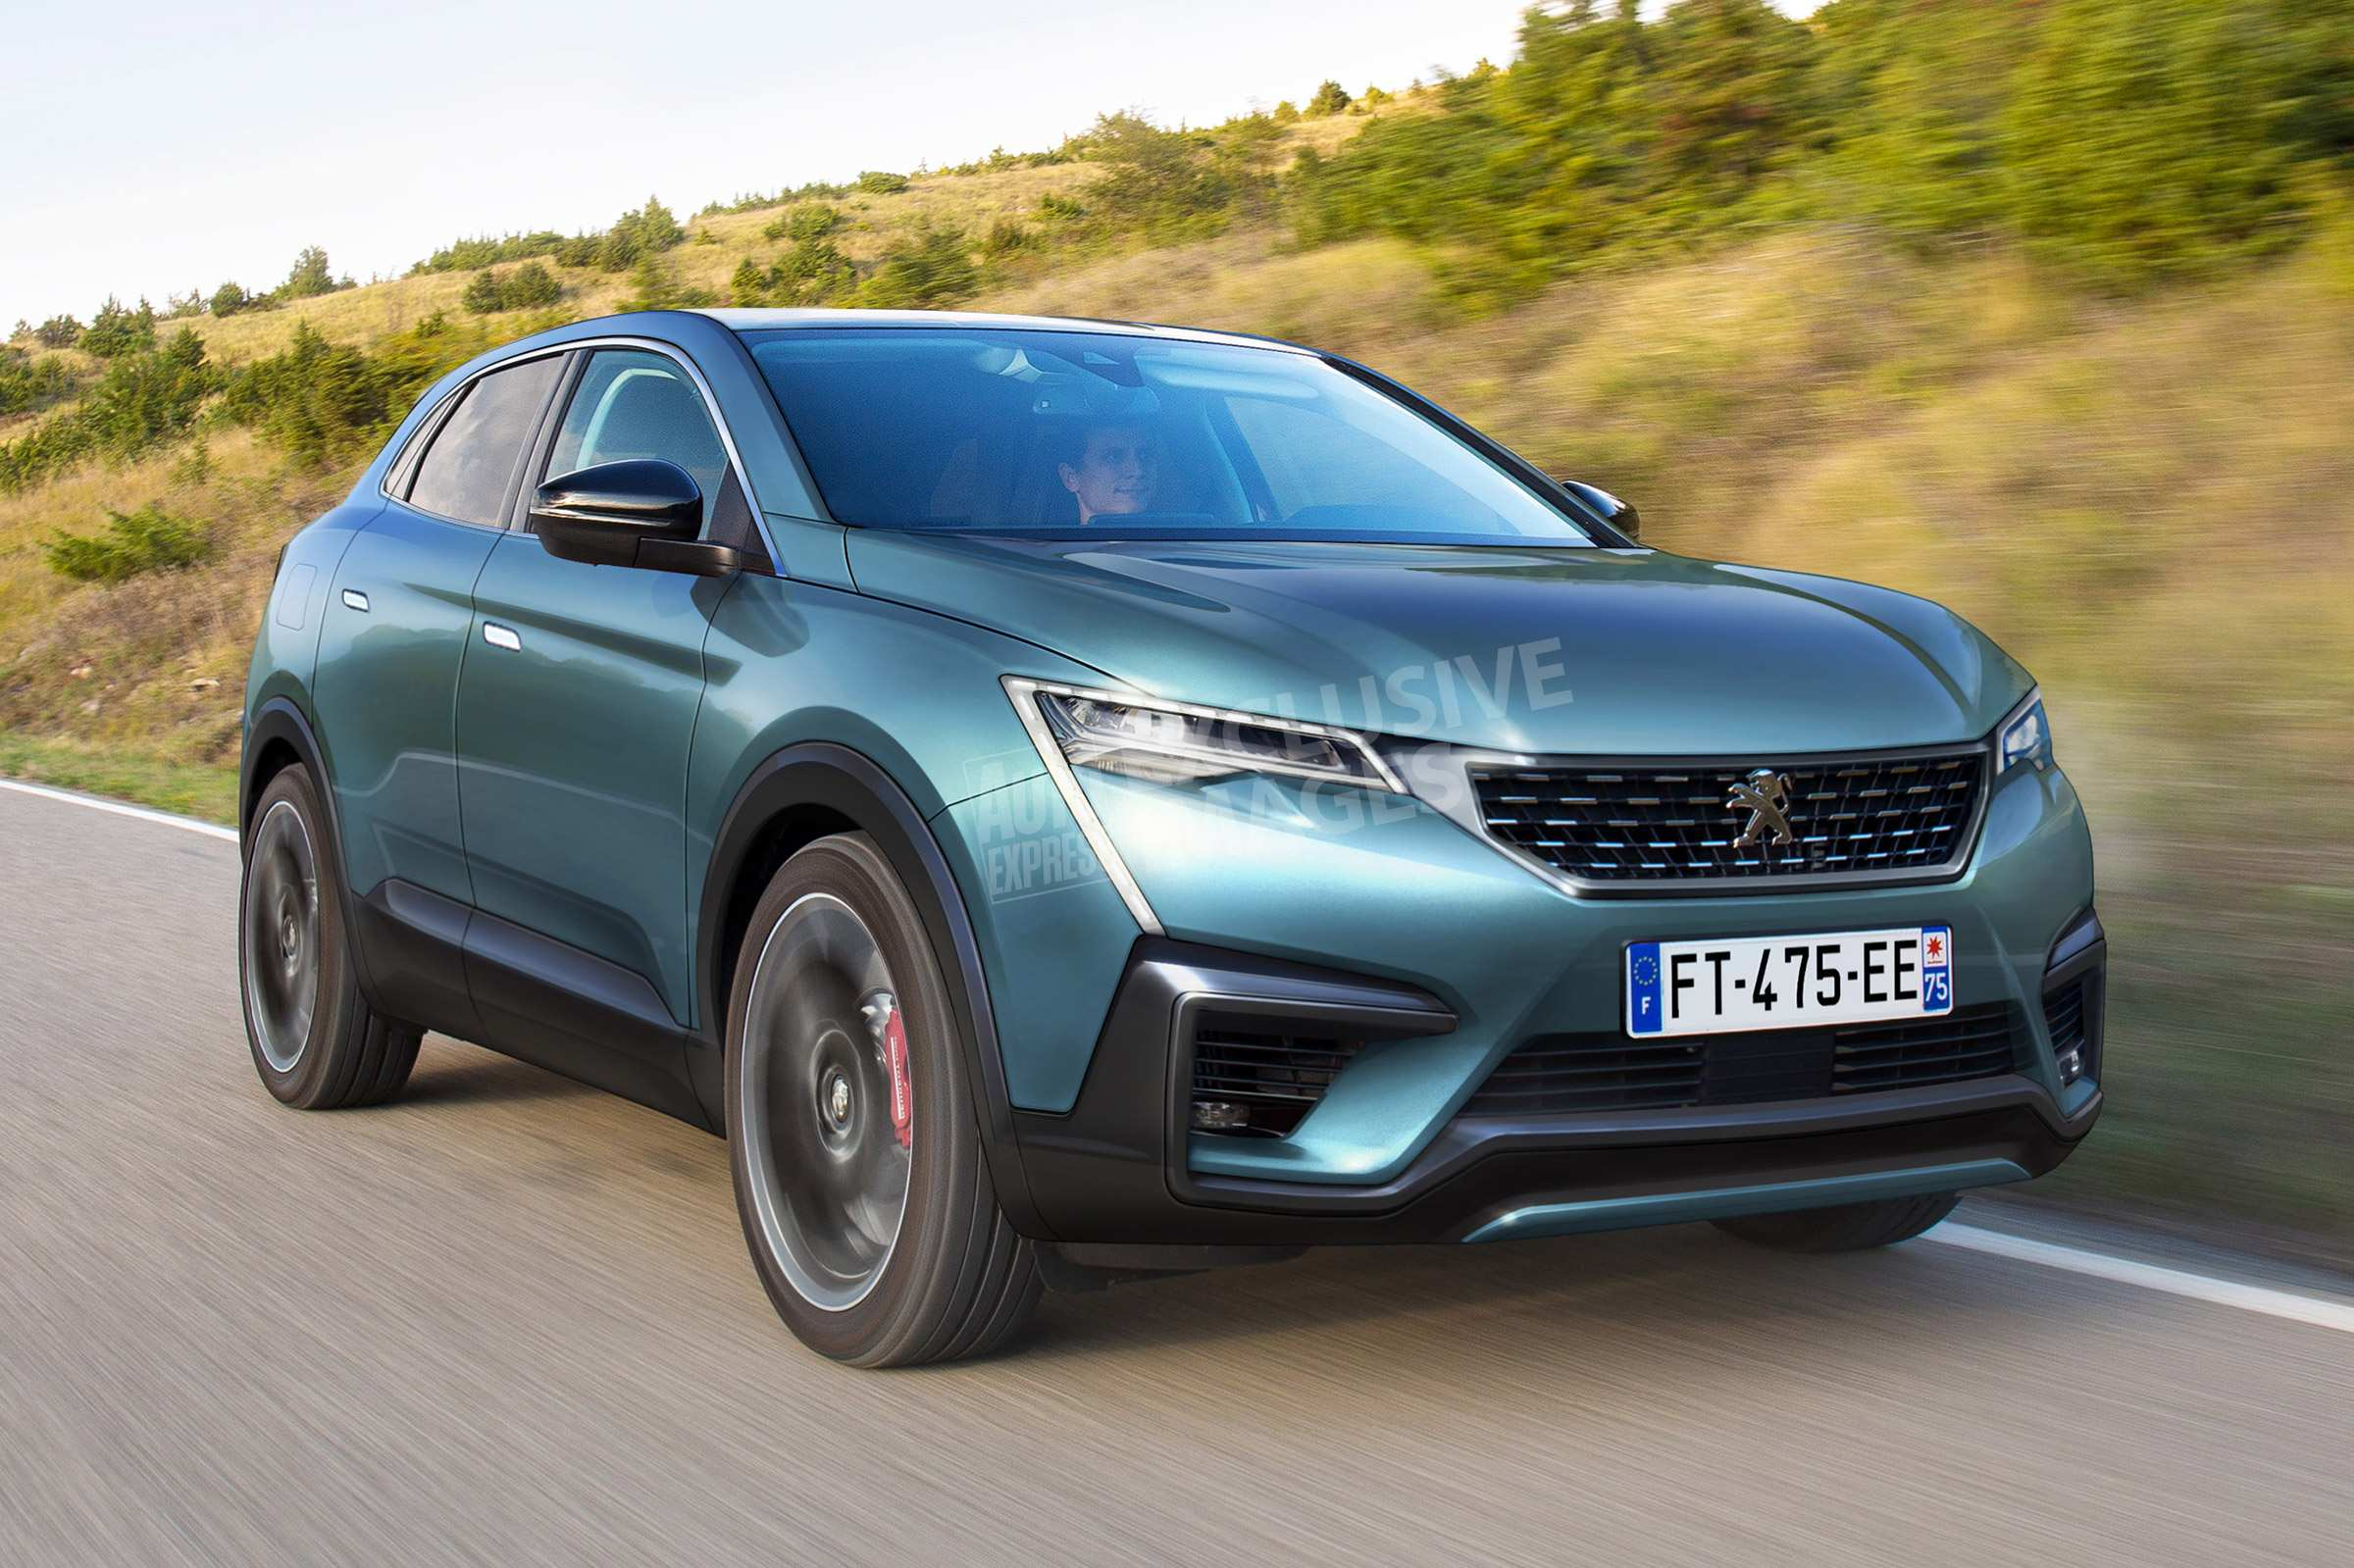 51 Best Review Peugeot Coupe 2019 Model with Peugeot Coupe 2019